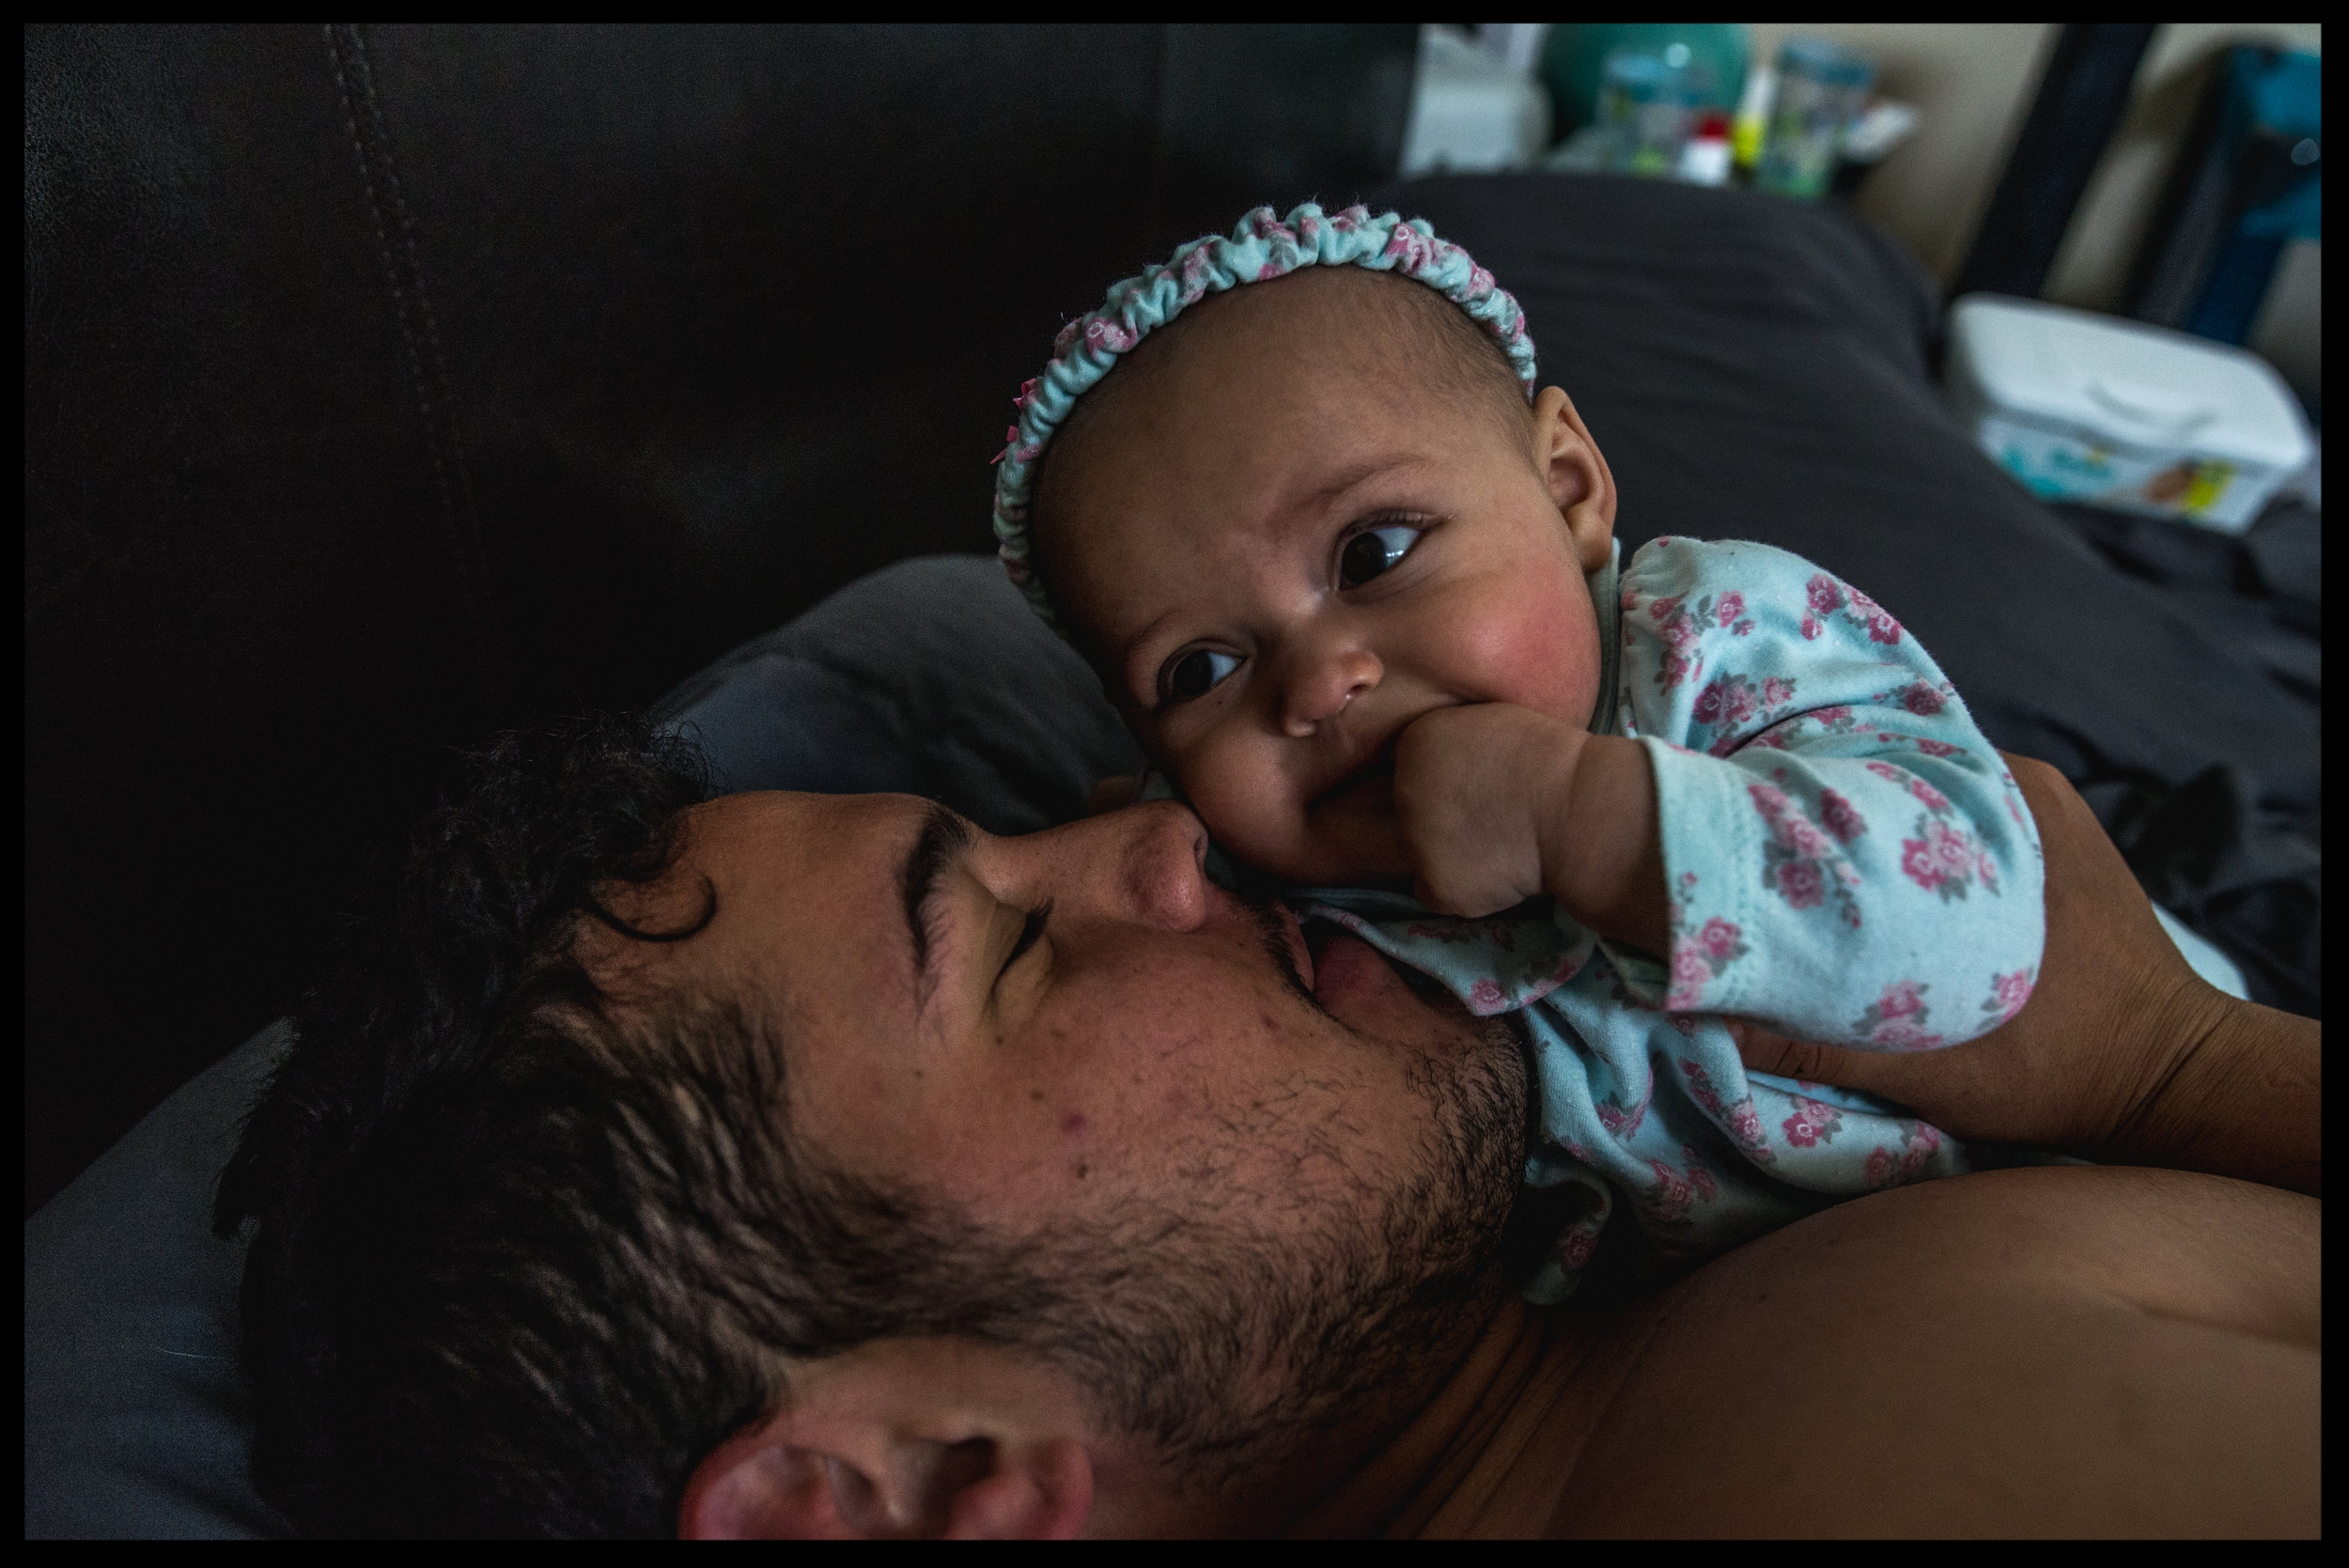 Daddy laying in bed kissing his smiling baby daughter, color,Aurora, Colorado